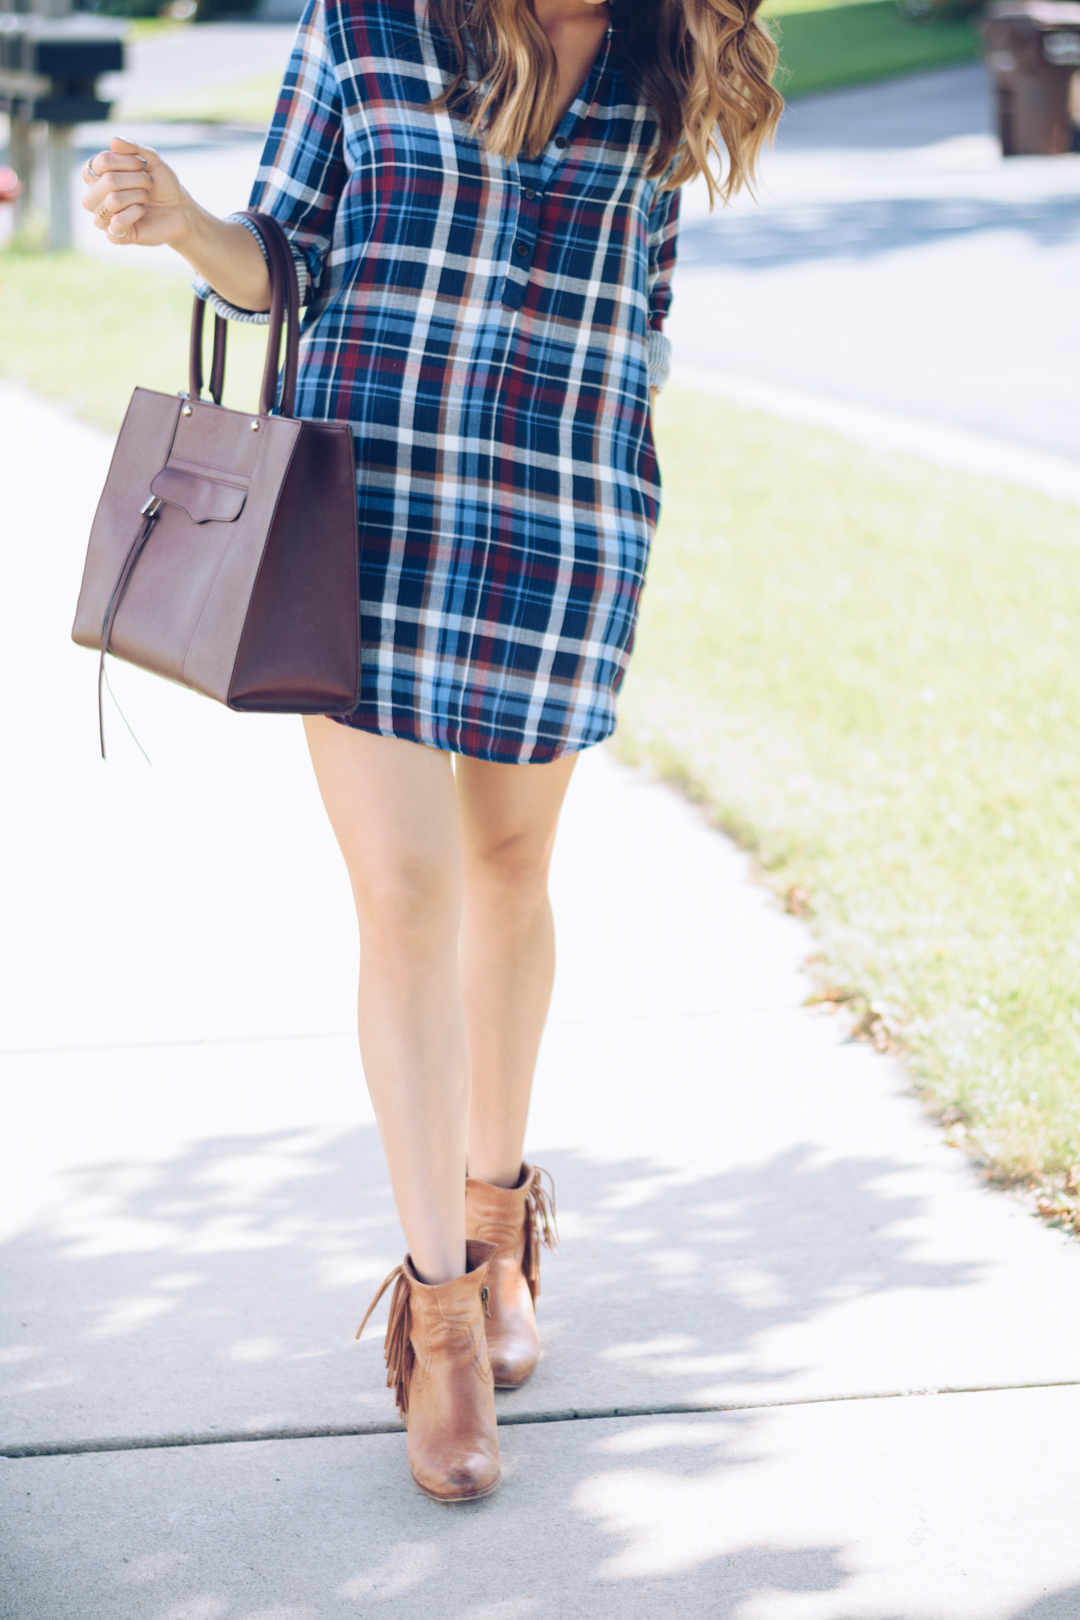 flannel shirt dress outfit, francescas flannel dress, classic ray ban aviators outfit, rebecca minkoff medium mab tote black cherry